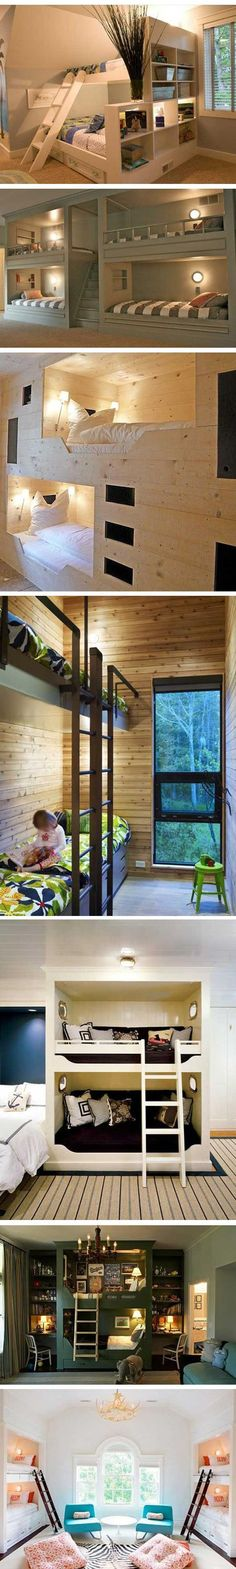 Funny pictures about The Coolest Bunk Beds. Oh, and cool pics about The Coolest Bunk Beds. Also, The Coolest Bunk Beds photos. Dream Rooms, Dream Bedroom, Kids Bedroom, Bedroom Ideas, Bedroom Bed, Trendy Bedroom, Extra Bedroom, Awesome Bedrooms, Cool Rooms